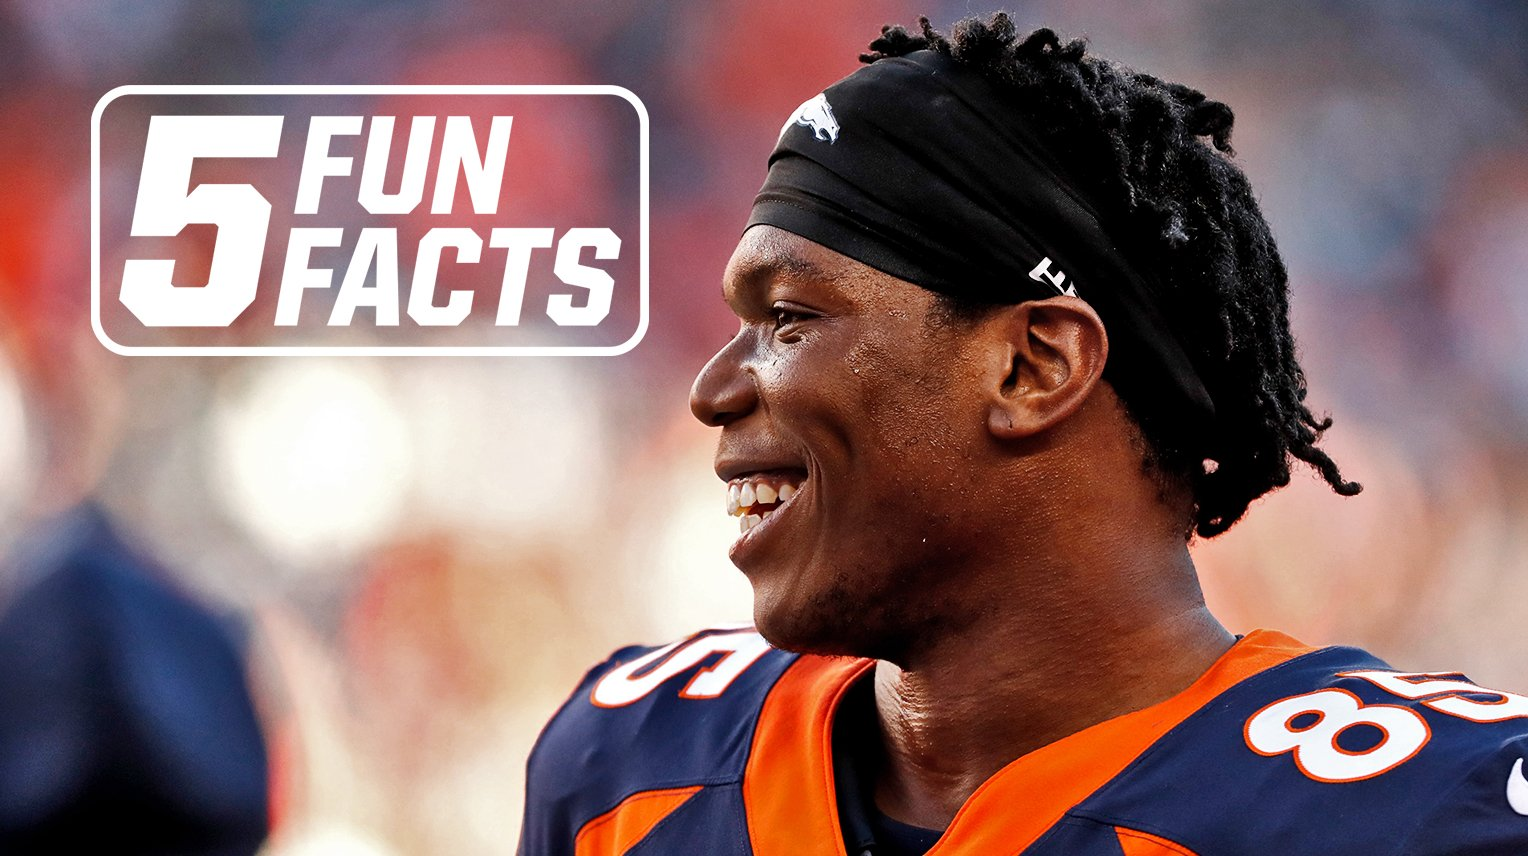 Get to know 5 fun facts about @VGreen85.  READ: https://t.co/3anpObRDGl https://t.co/WxxGFy2ph9